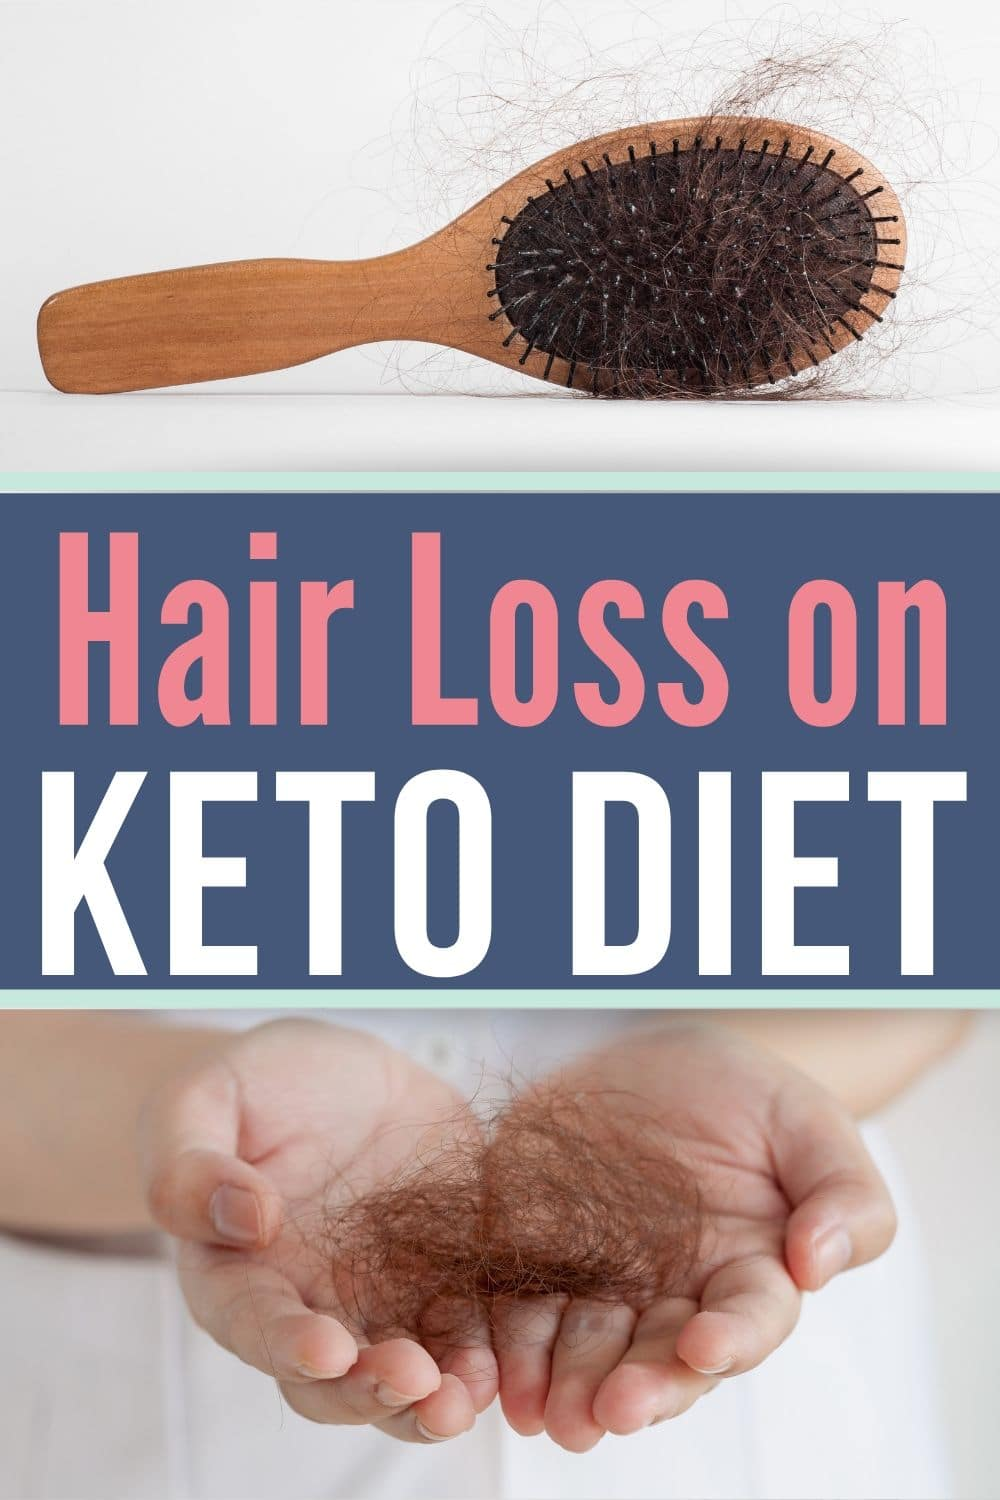 a collage of hair loss in a brush and hand for hair loss on keto